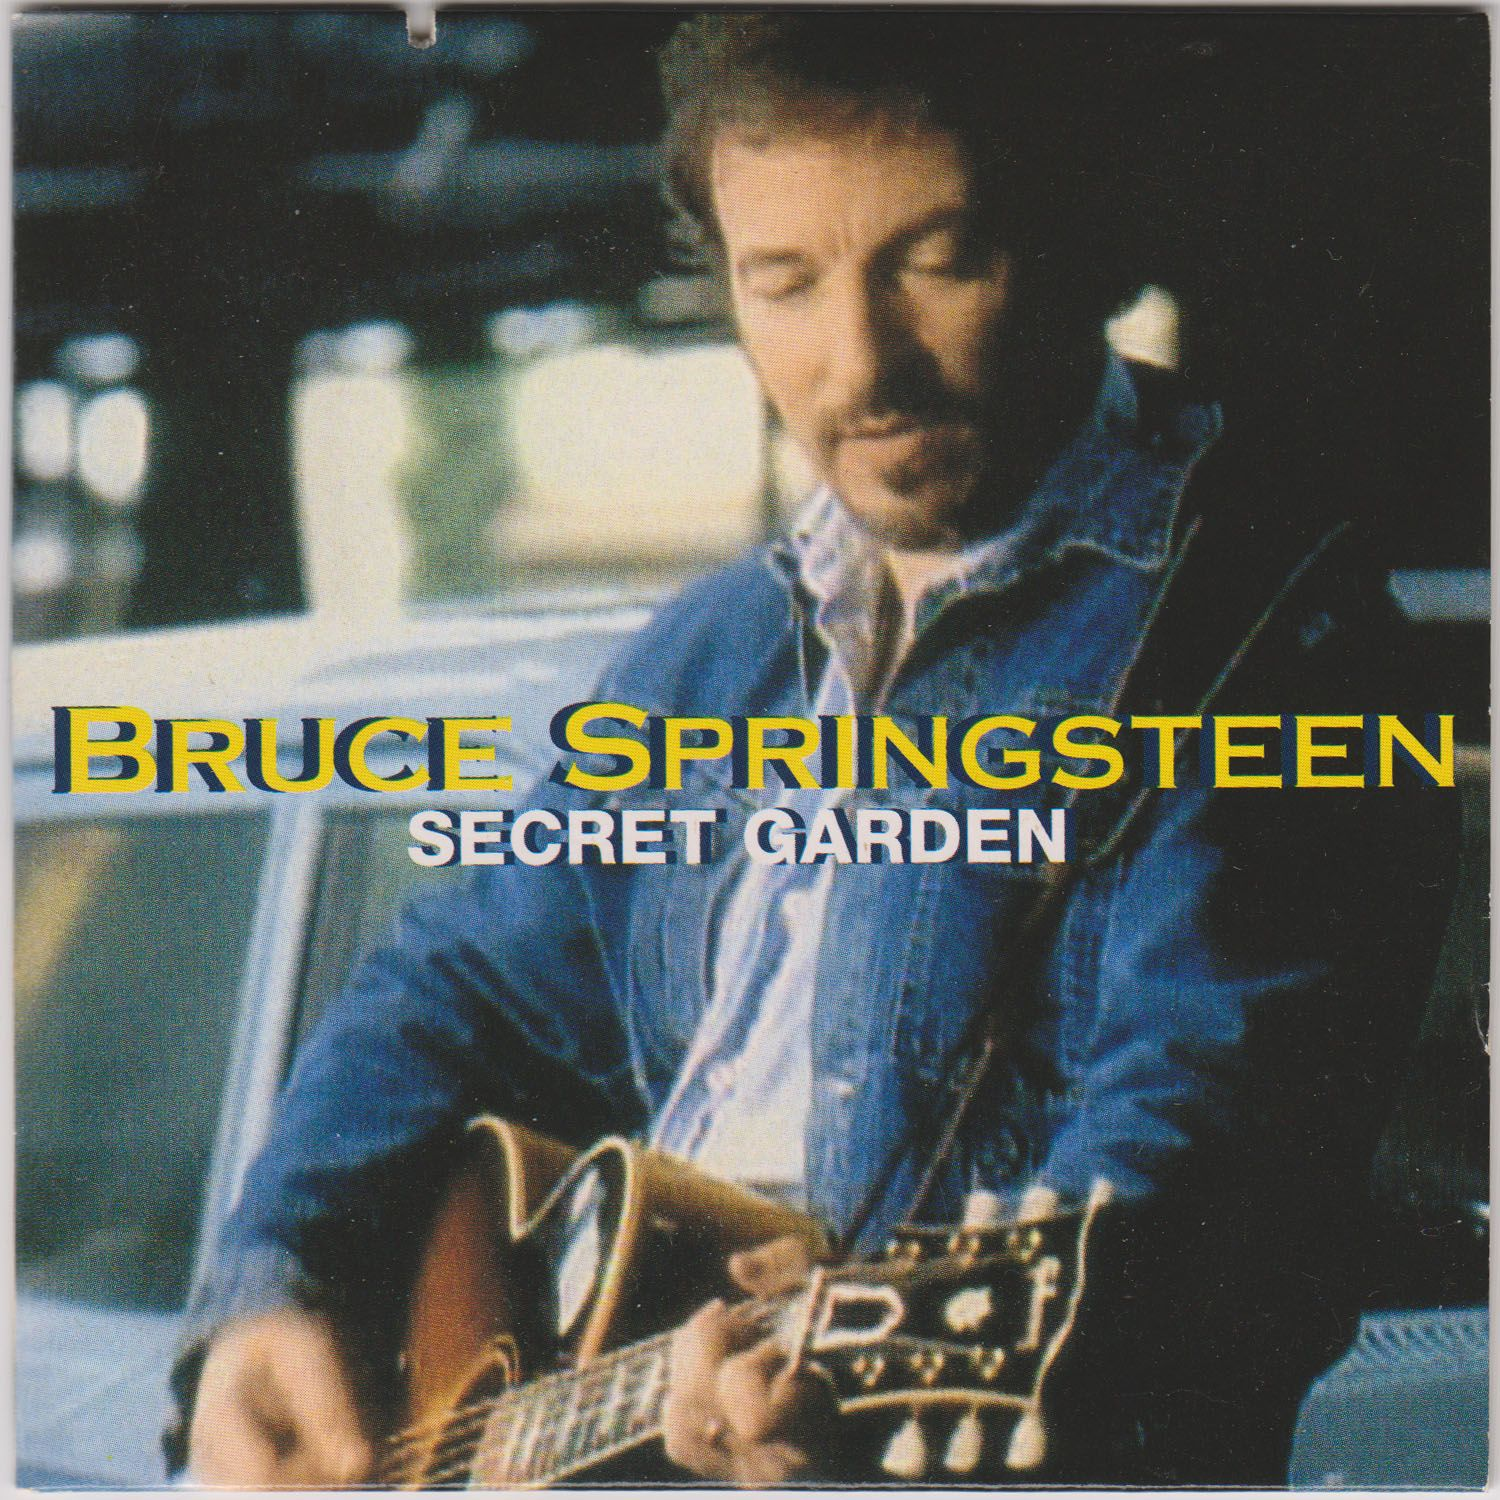 Bruce Springsteen Secret Garden Springsteen Album